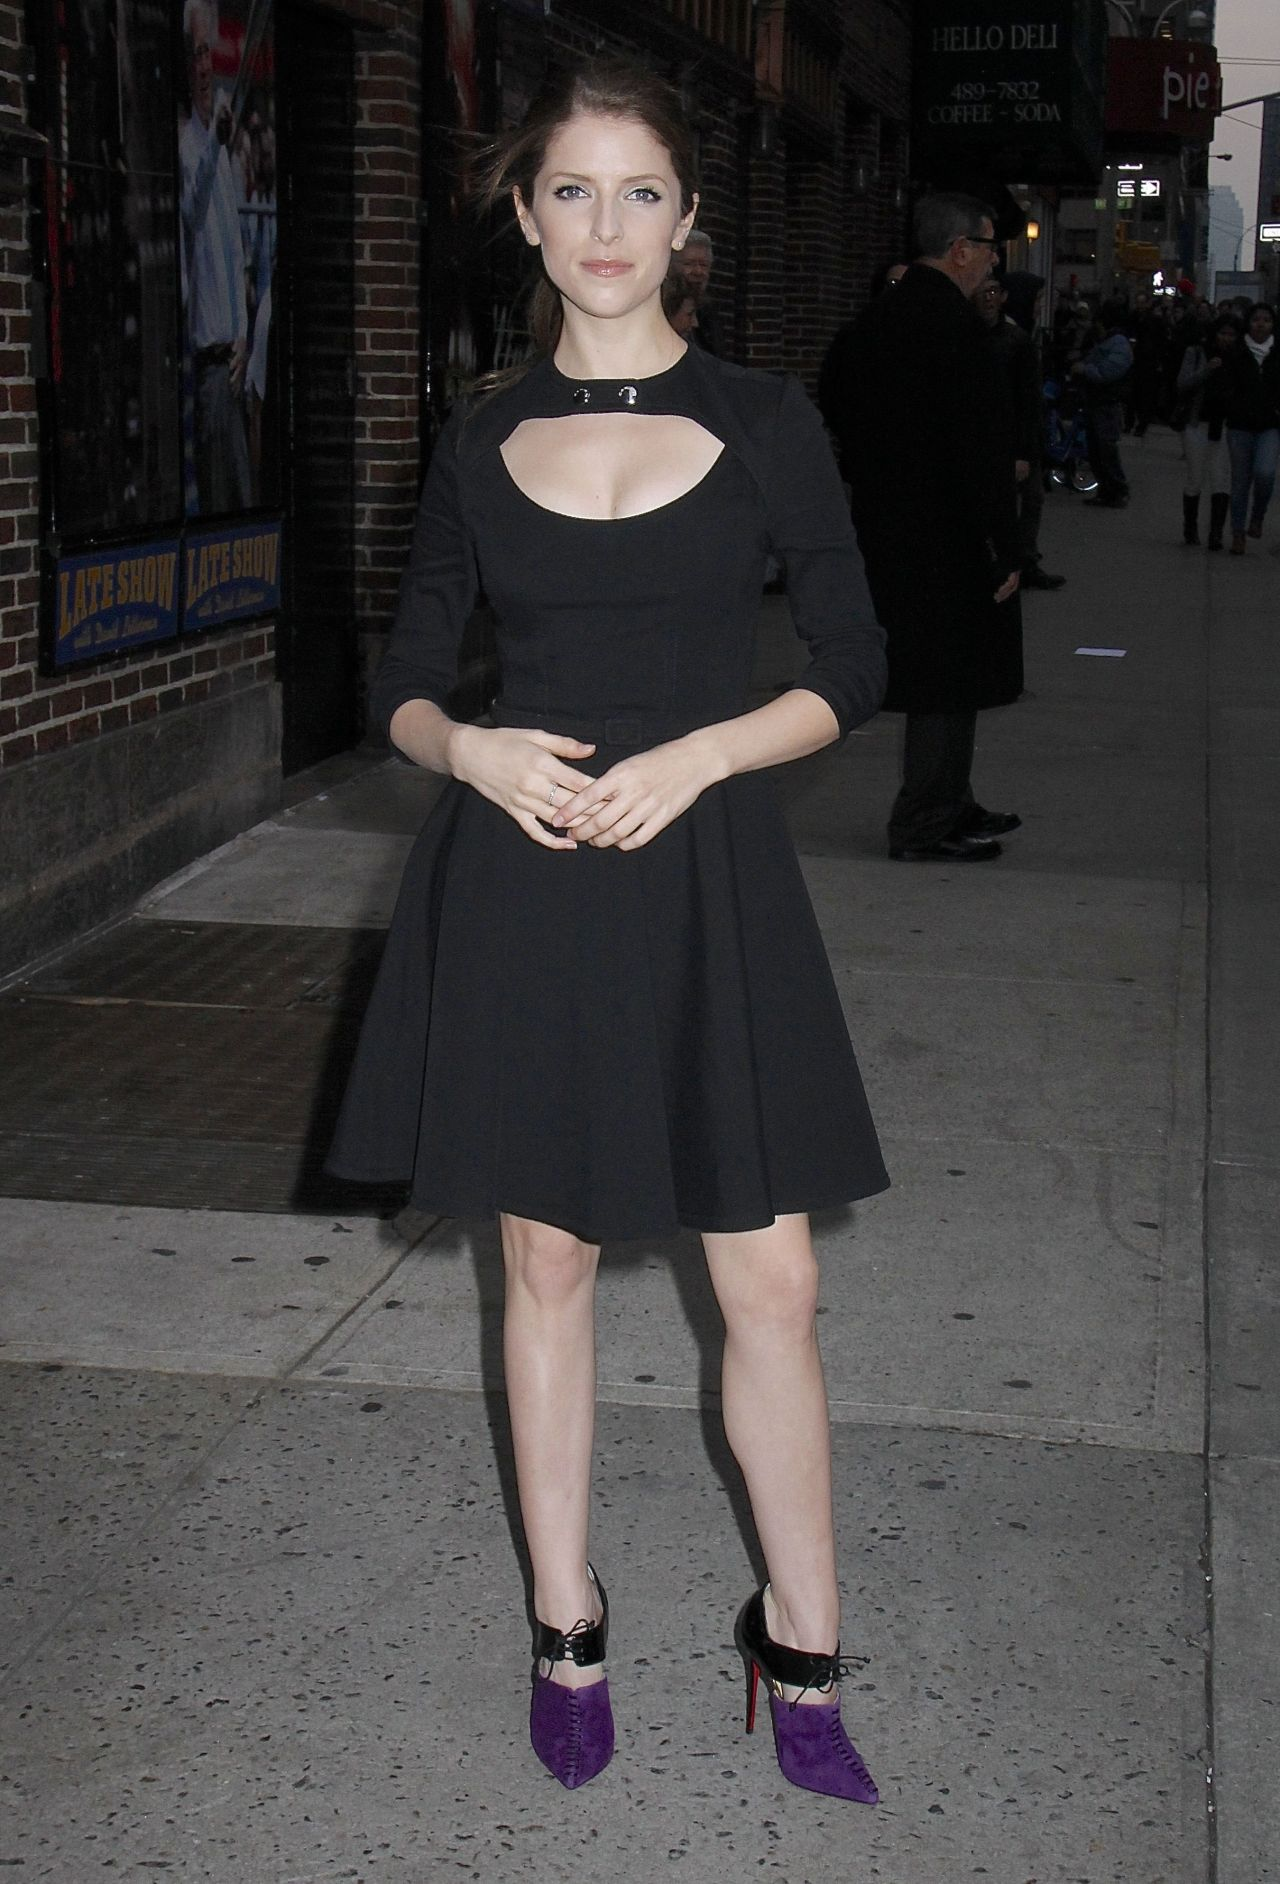 anna-kendrick-arriving-to-appear-on-the-late-show-with-david-letterman-in-new-york-city-dec.-2014_6